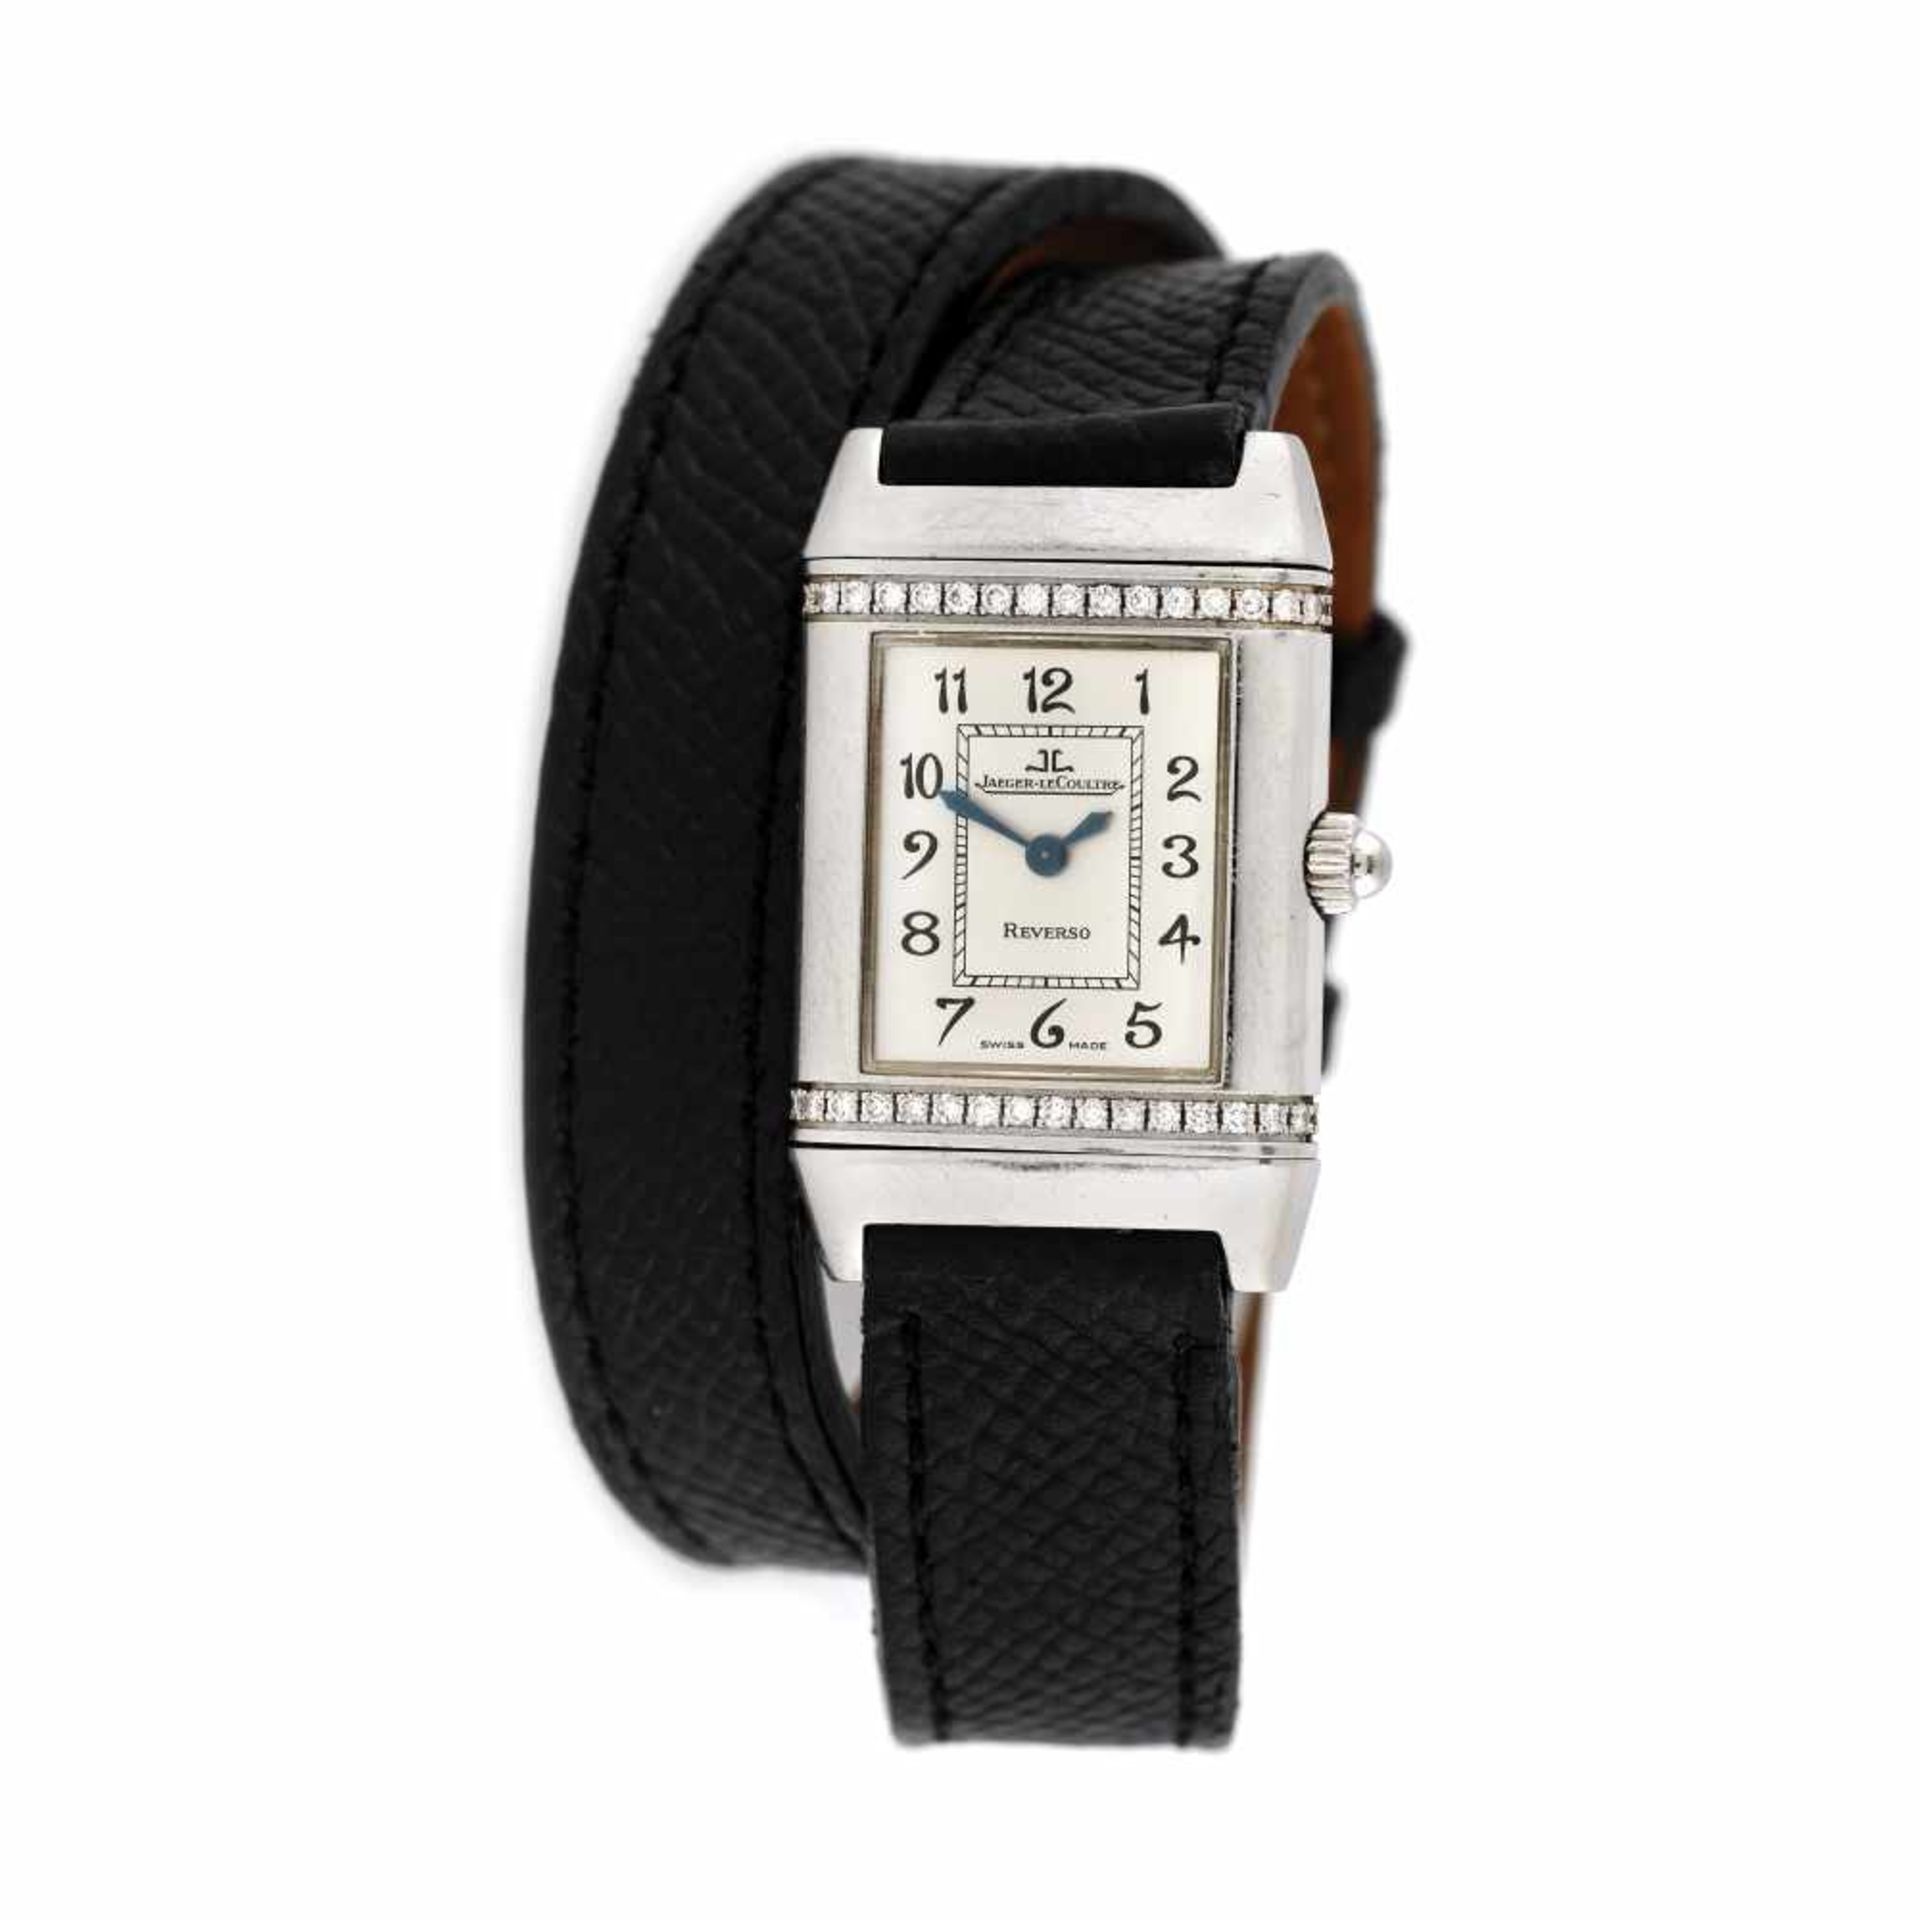 Jaeger-LeCoultre Reverso wristwatch, women, decorated with diamonds